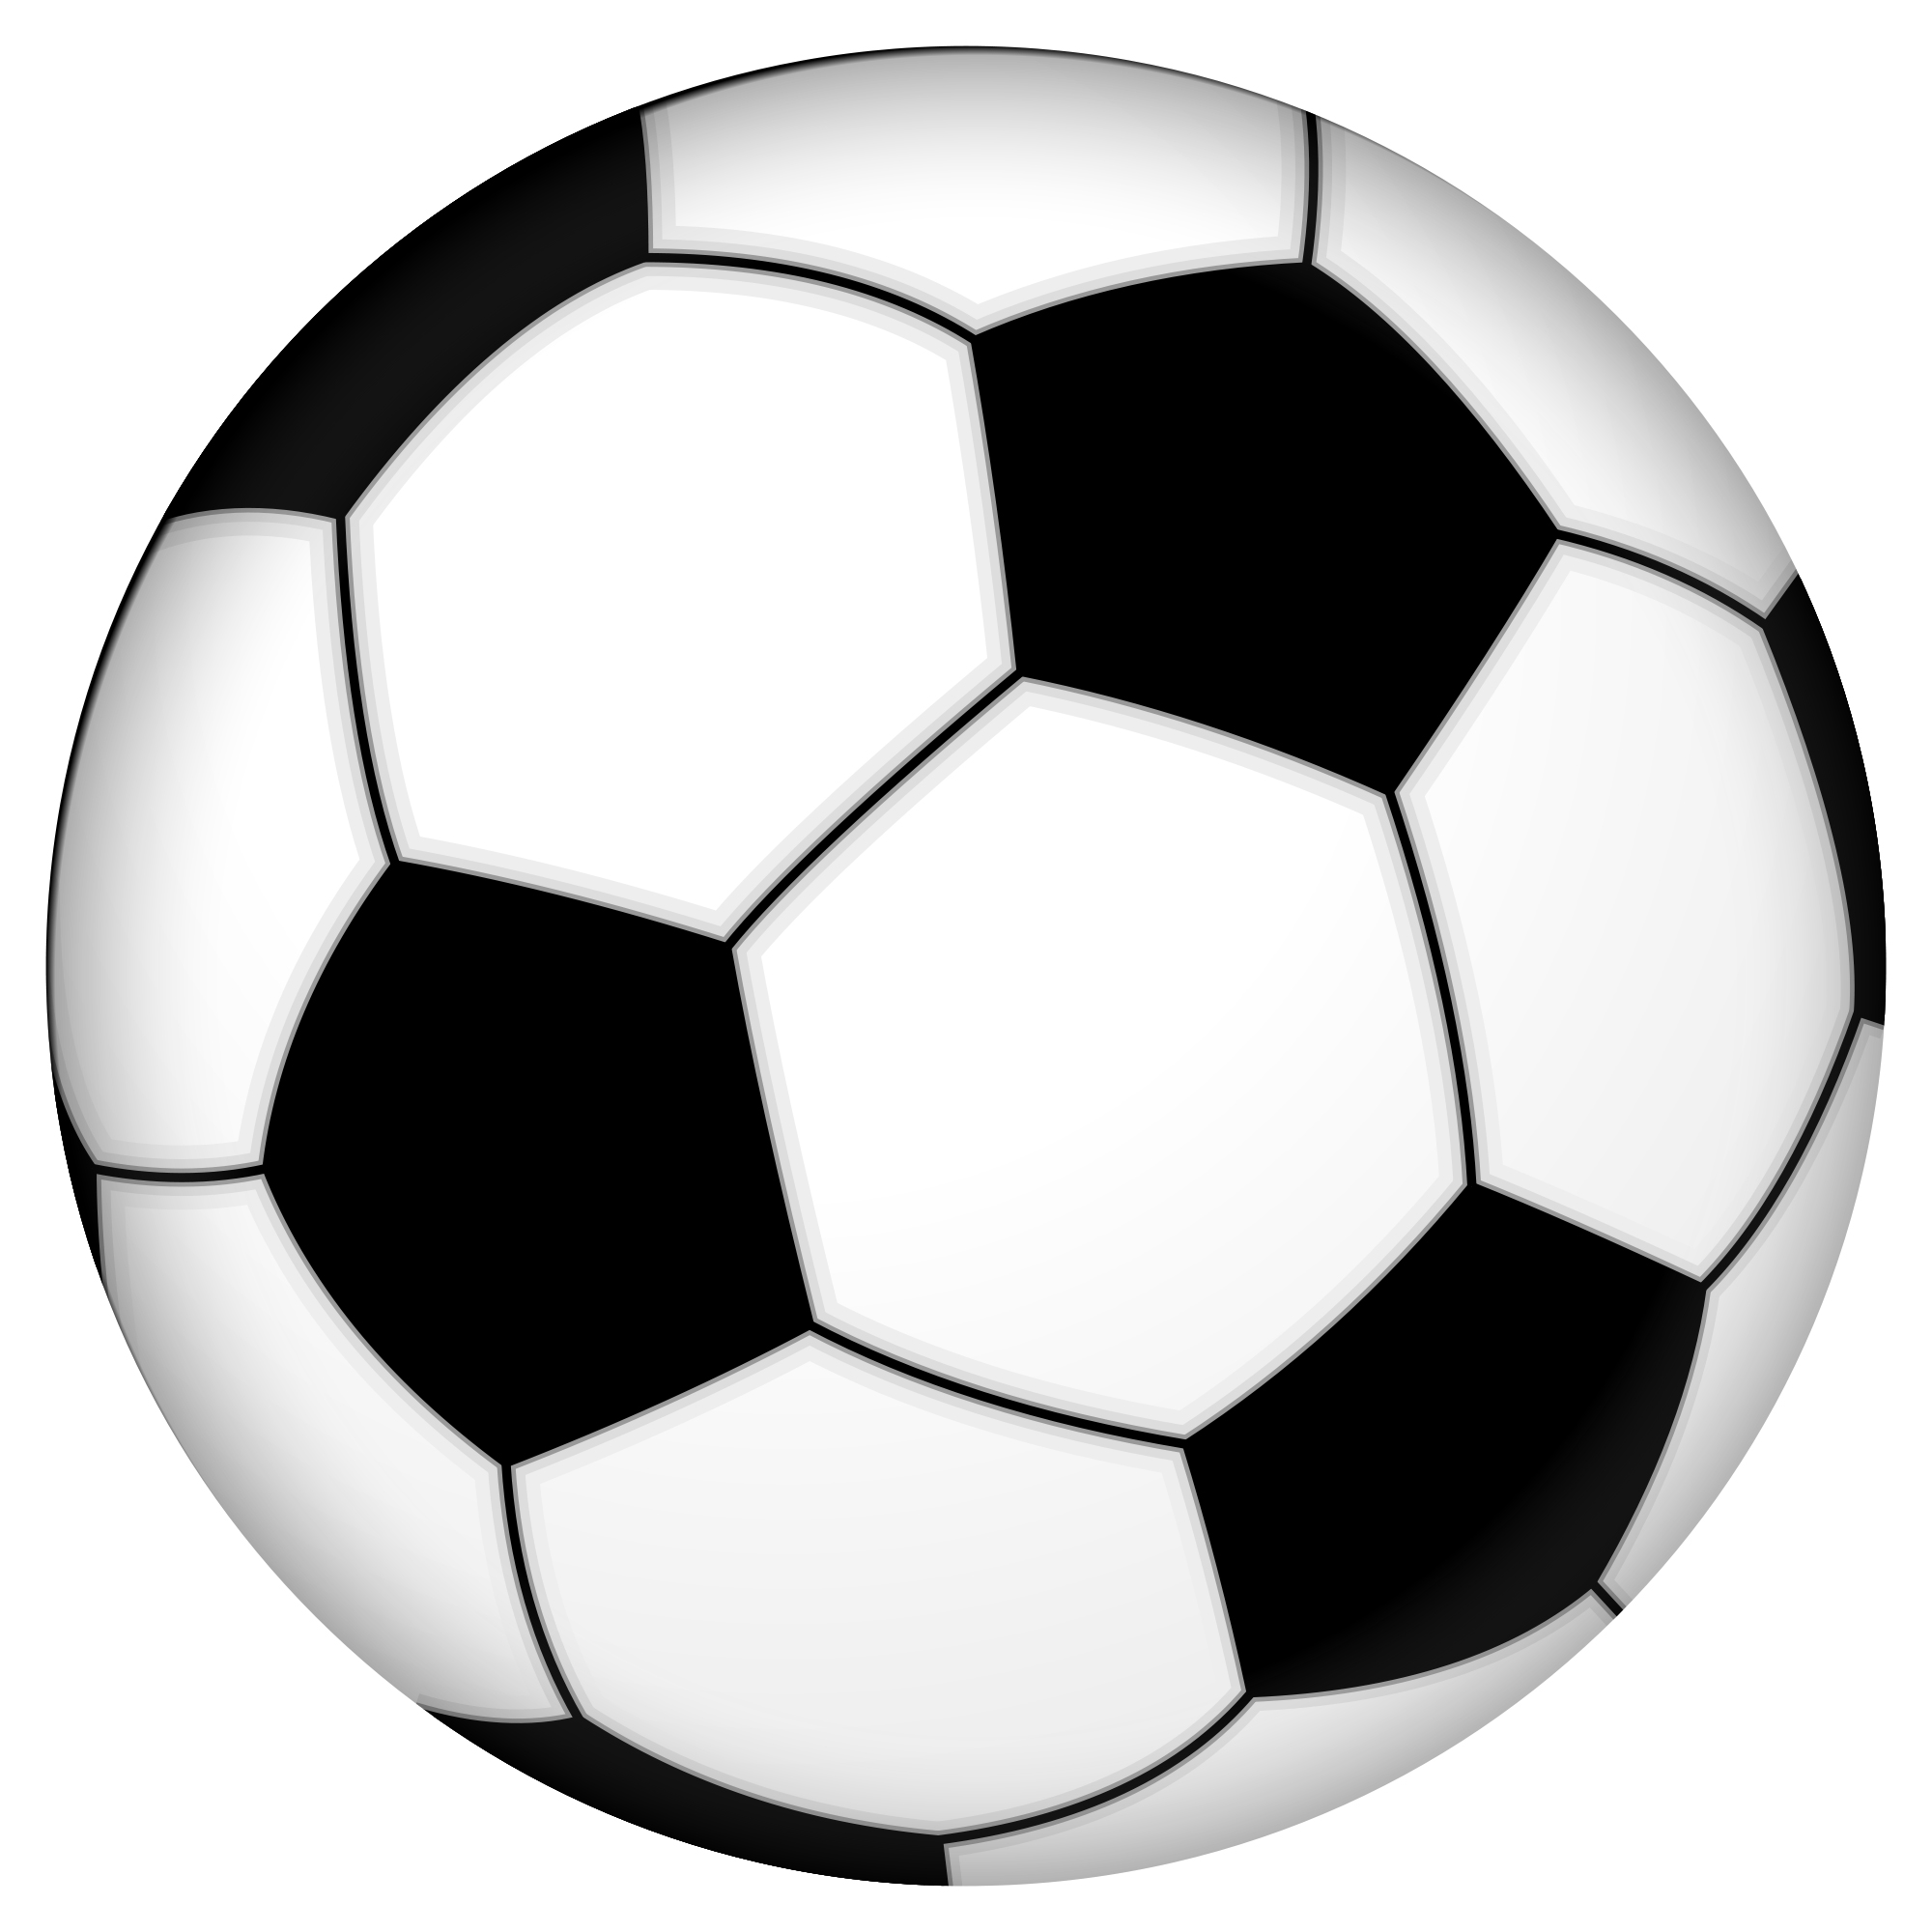 2000x2000 Kicking Soccer Ball Clip Art Free Clipart Images